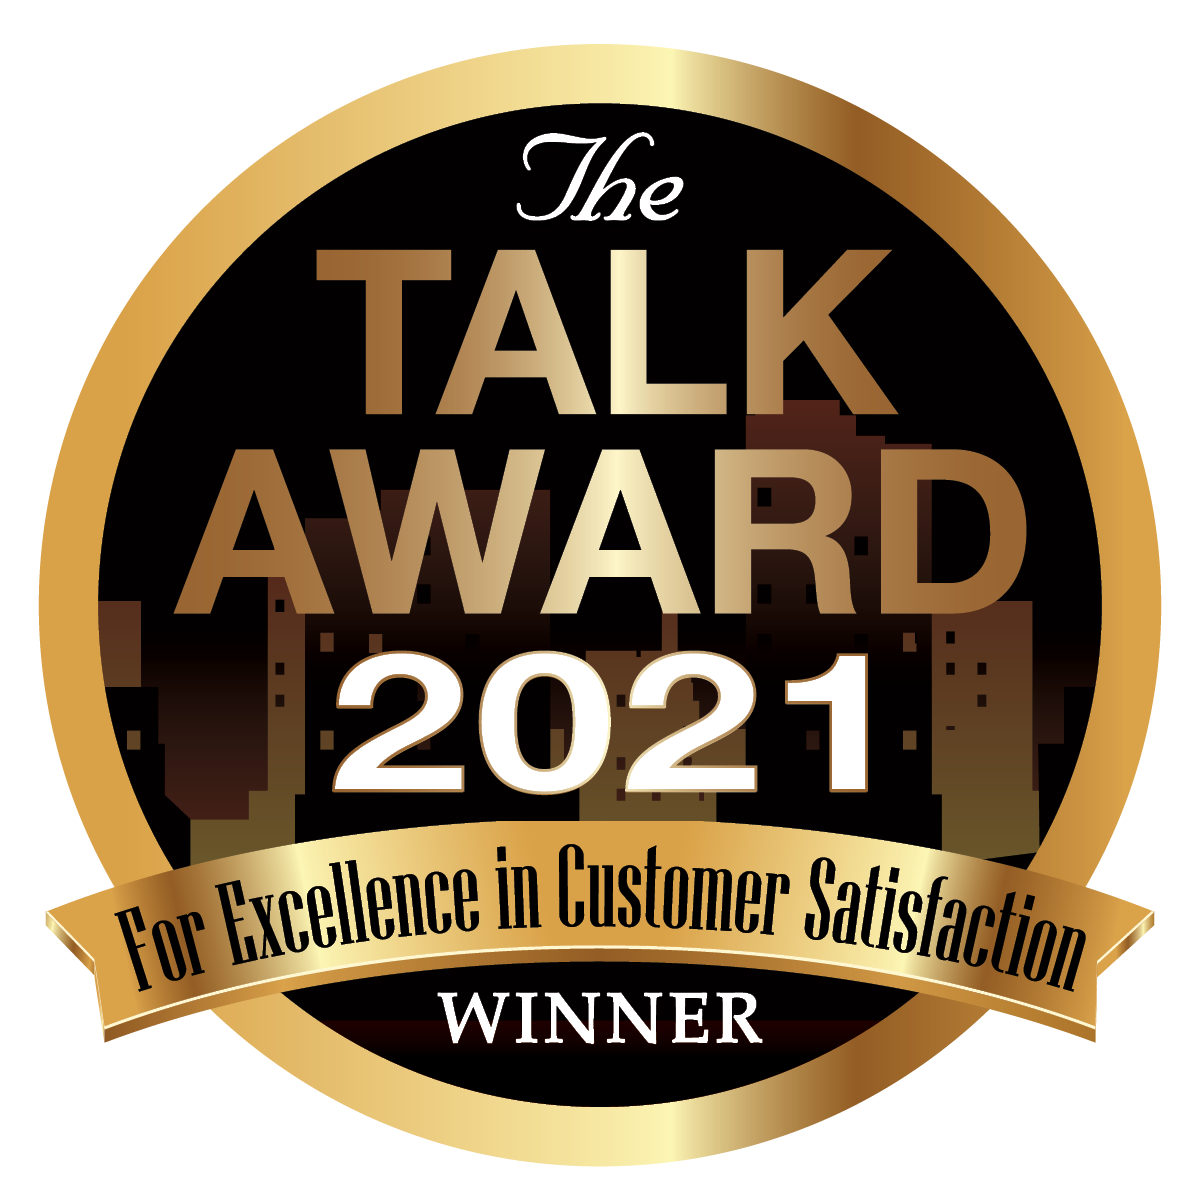 The Talk Award for Excellence in Customer Service